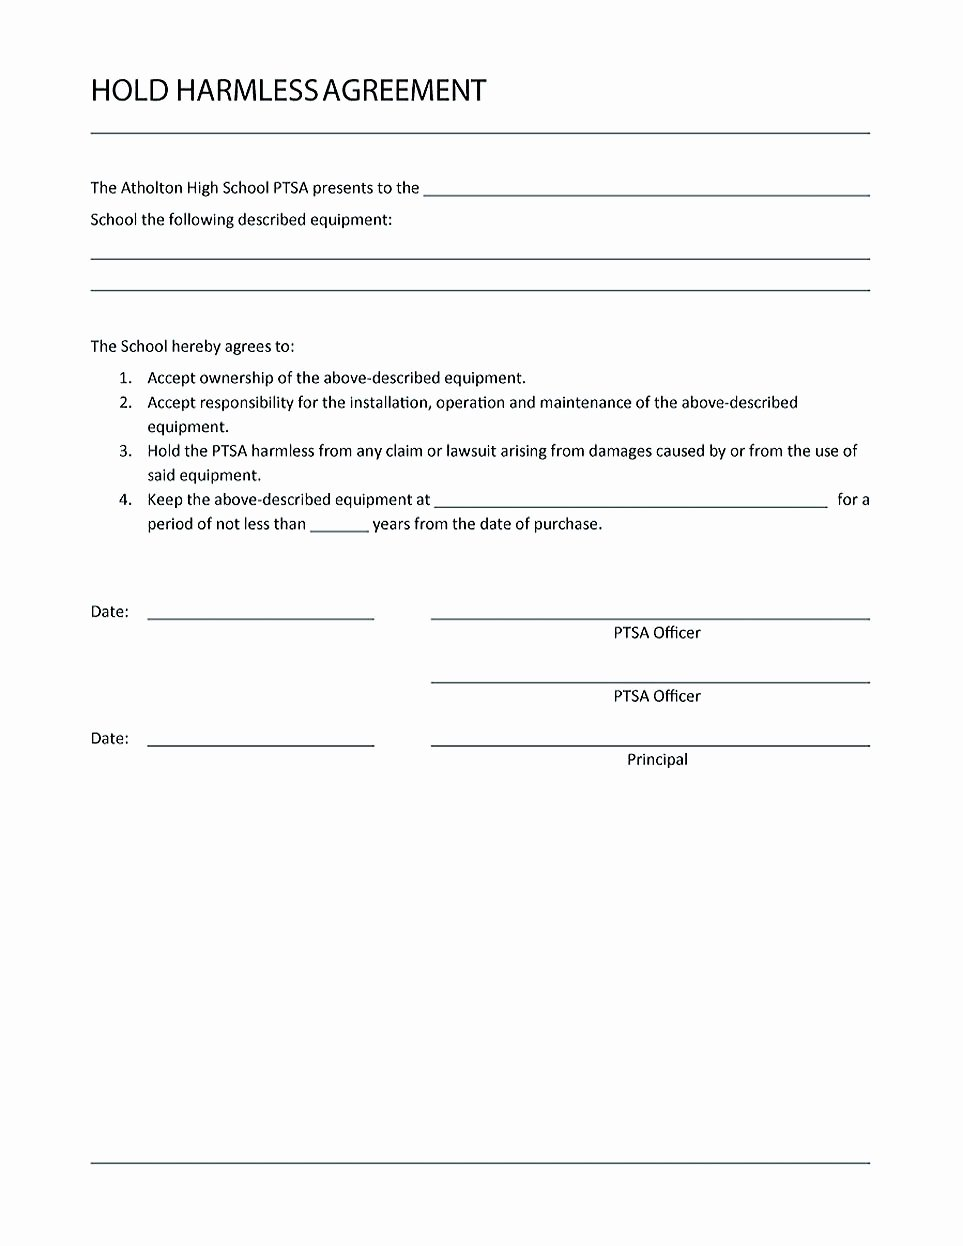 Hold Harmless Agreement Sample Wording Best Of Making Hold Harmless Agreement Template for Different Purposes